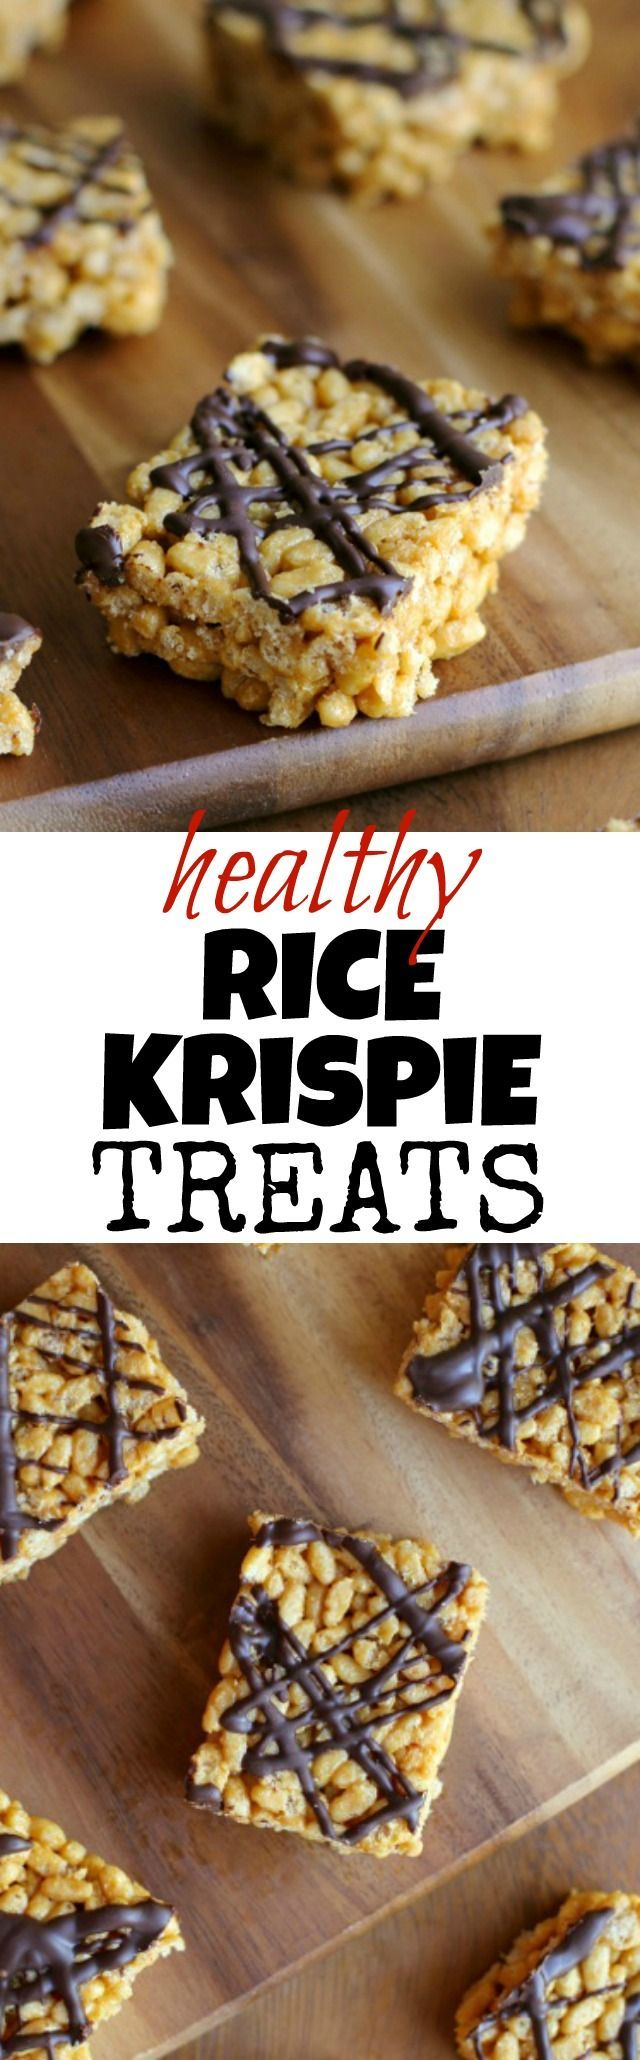 Healthy Rice Krispie Treats - this childhood favourite is made with NO marshmallows or butter, but tastes just as delicious as the original | runningwithspoons... #glutenfree #vegan #snack #recipe